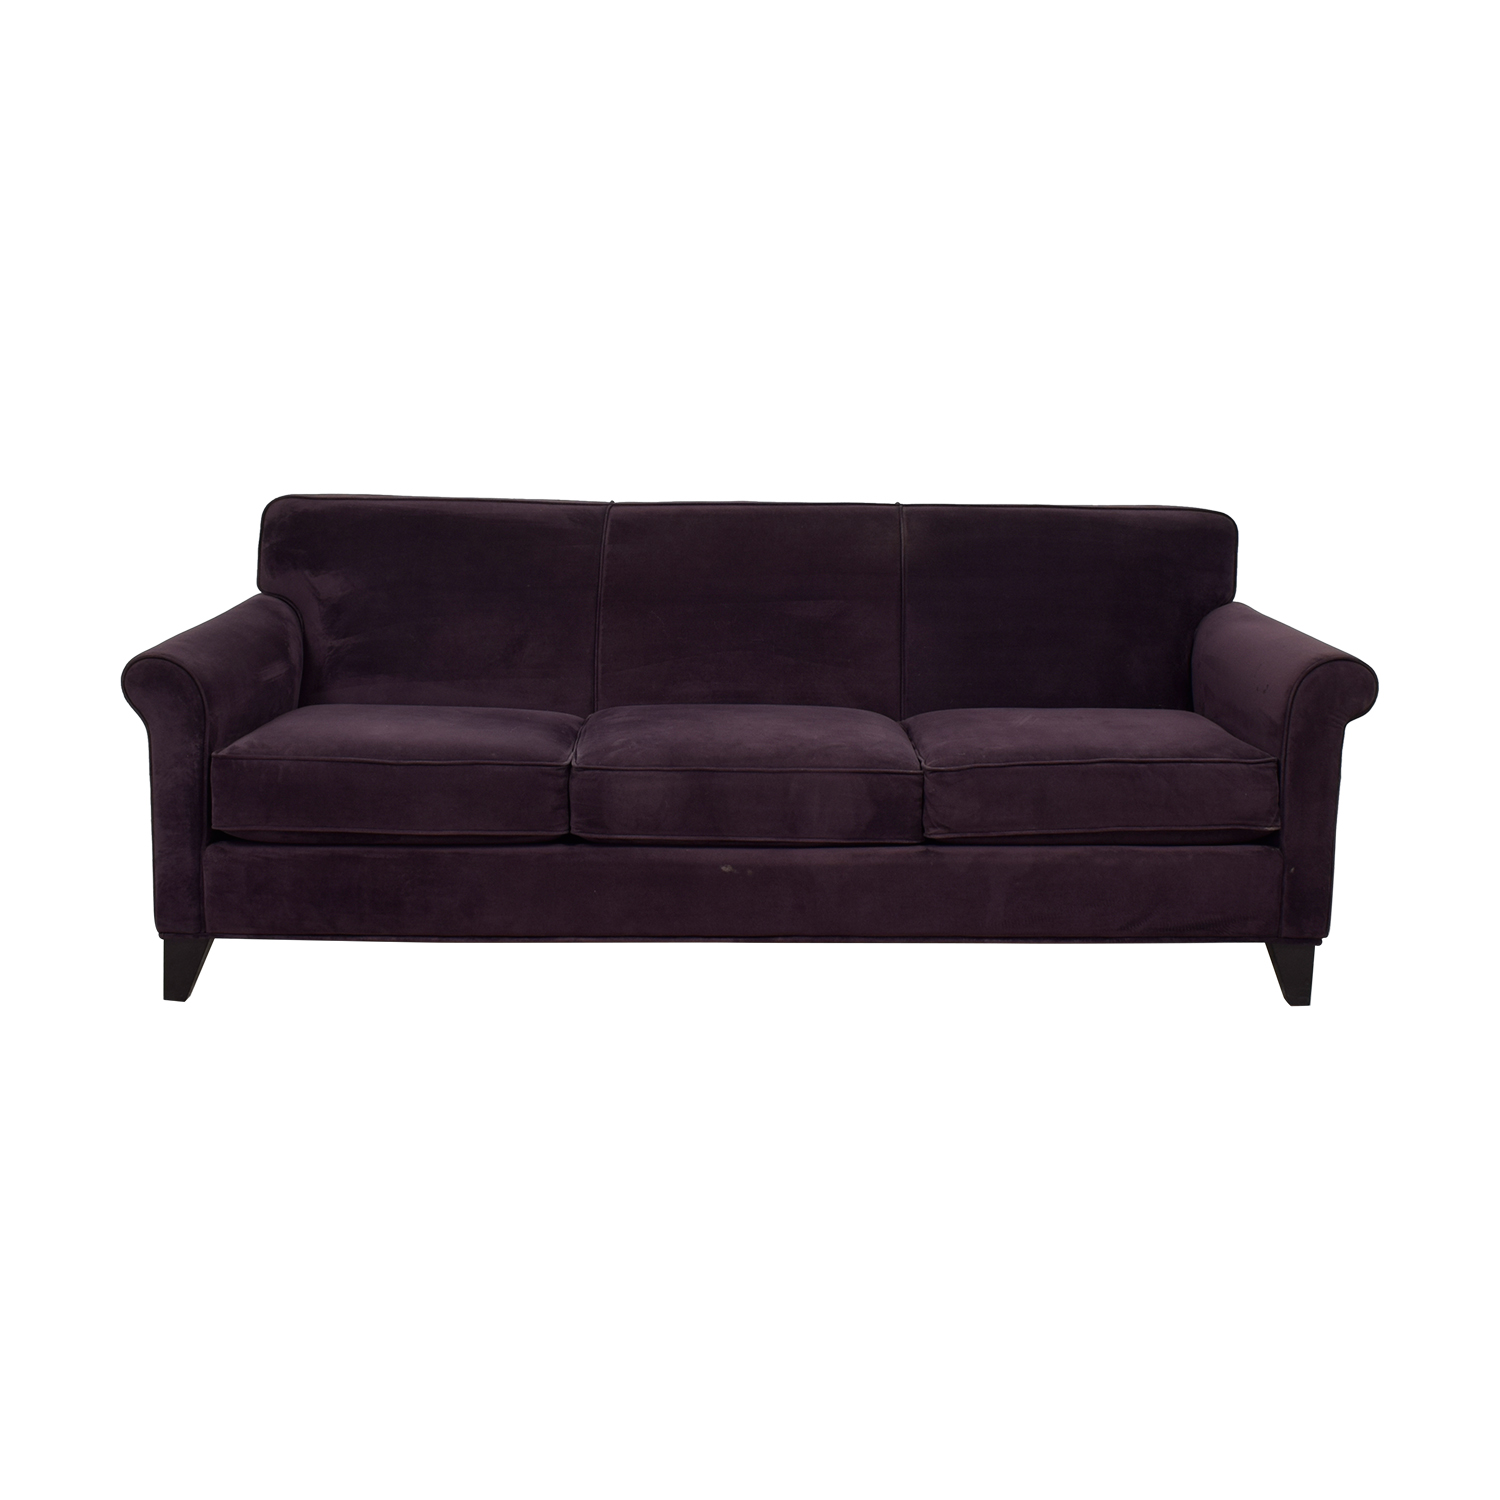 Raymour & Flanigan Purple Three-Cushion Couch sale